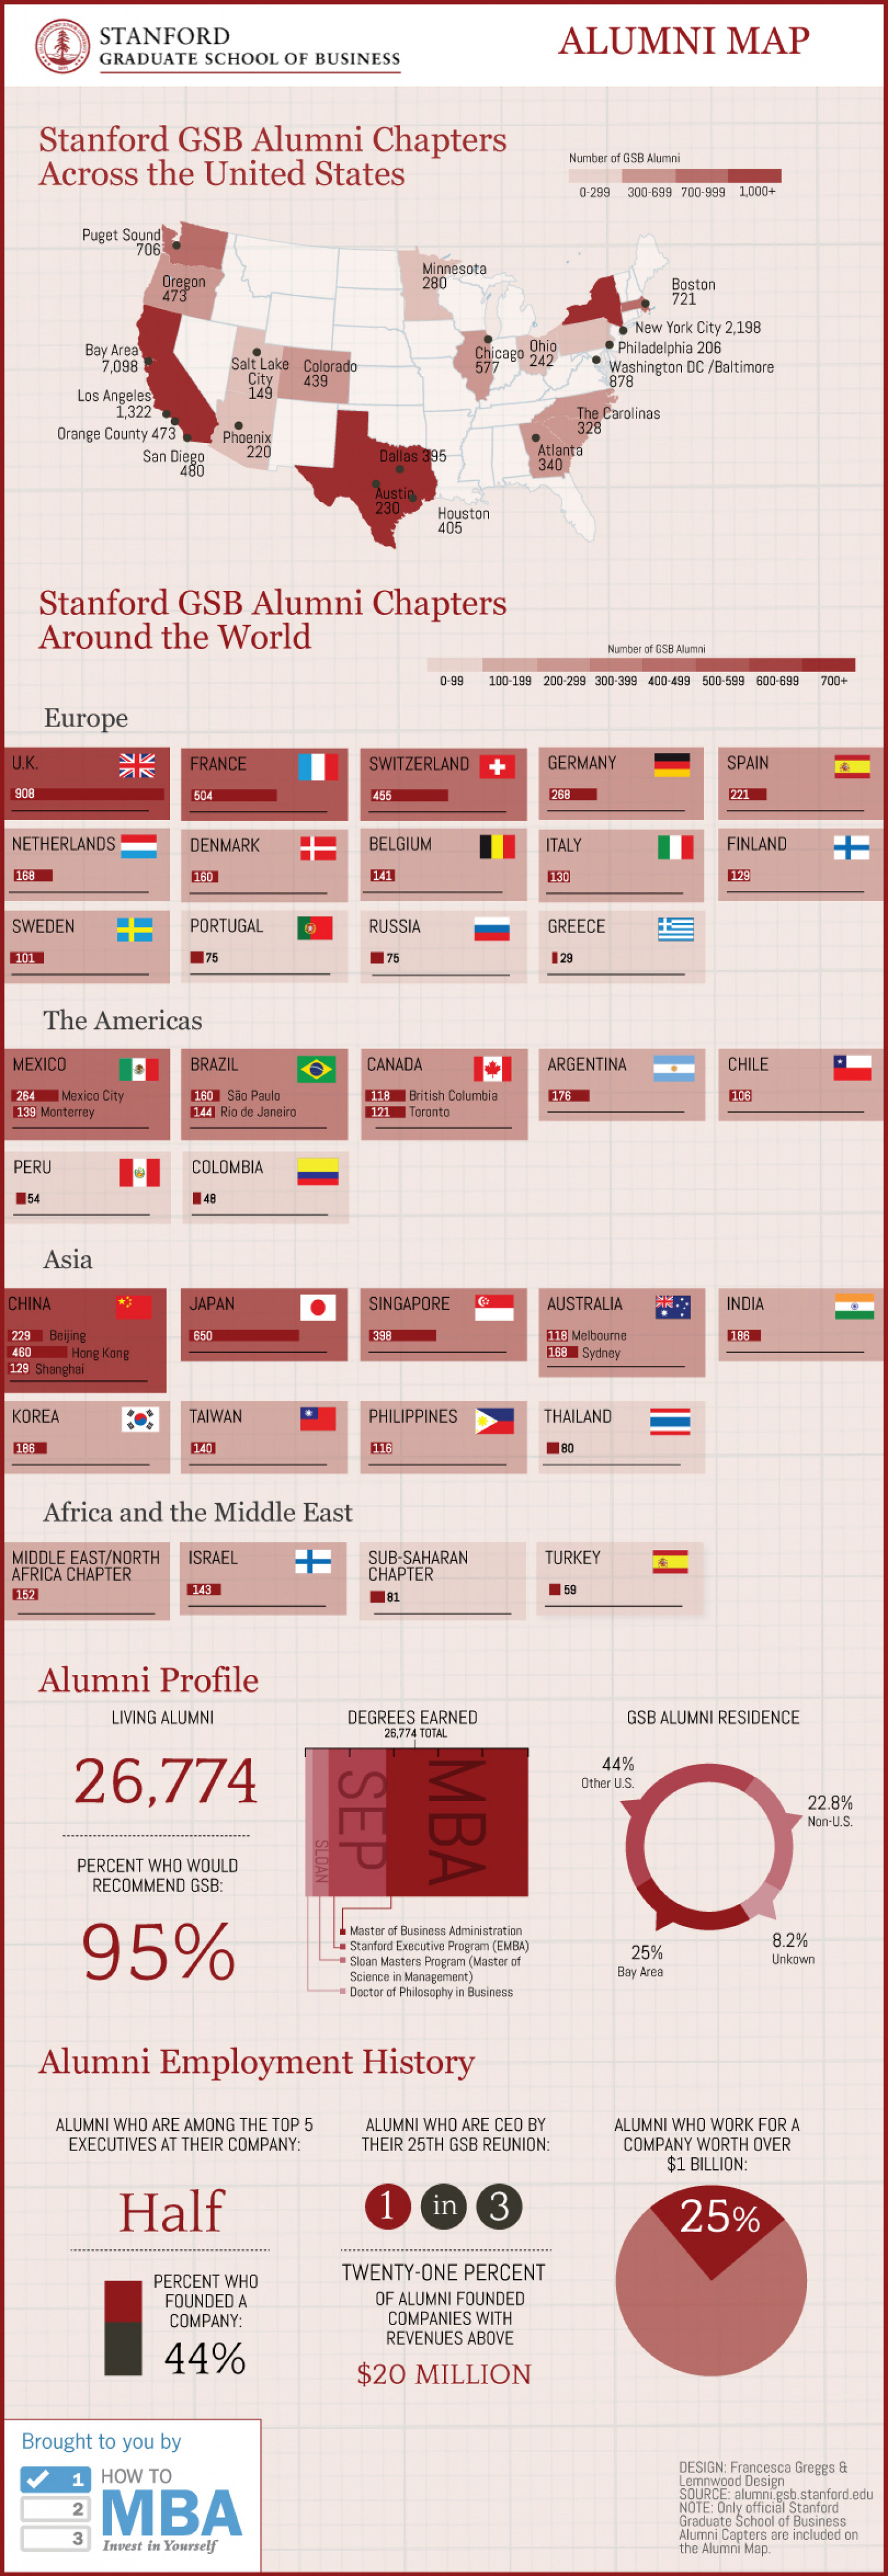 Stanford Graduate School of Business Alumni Map Infographic